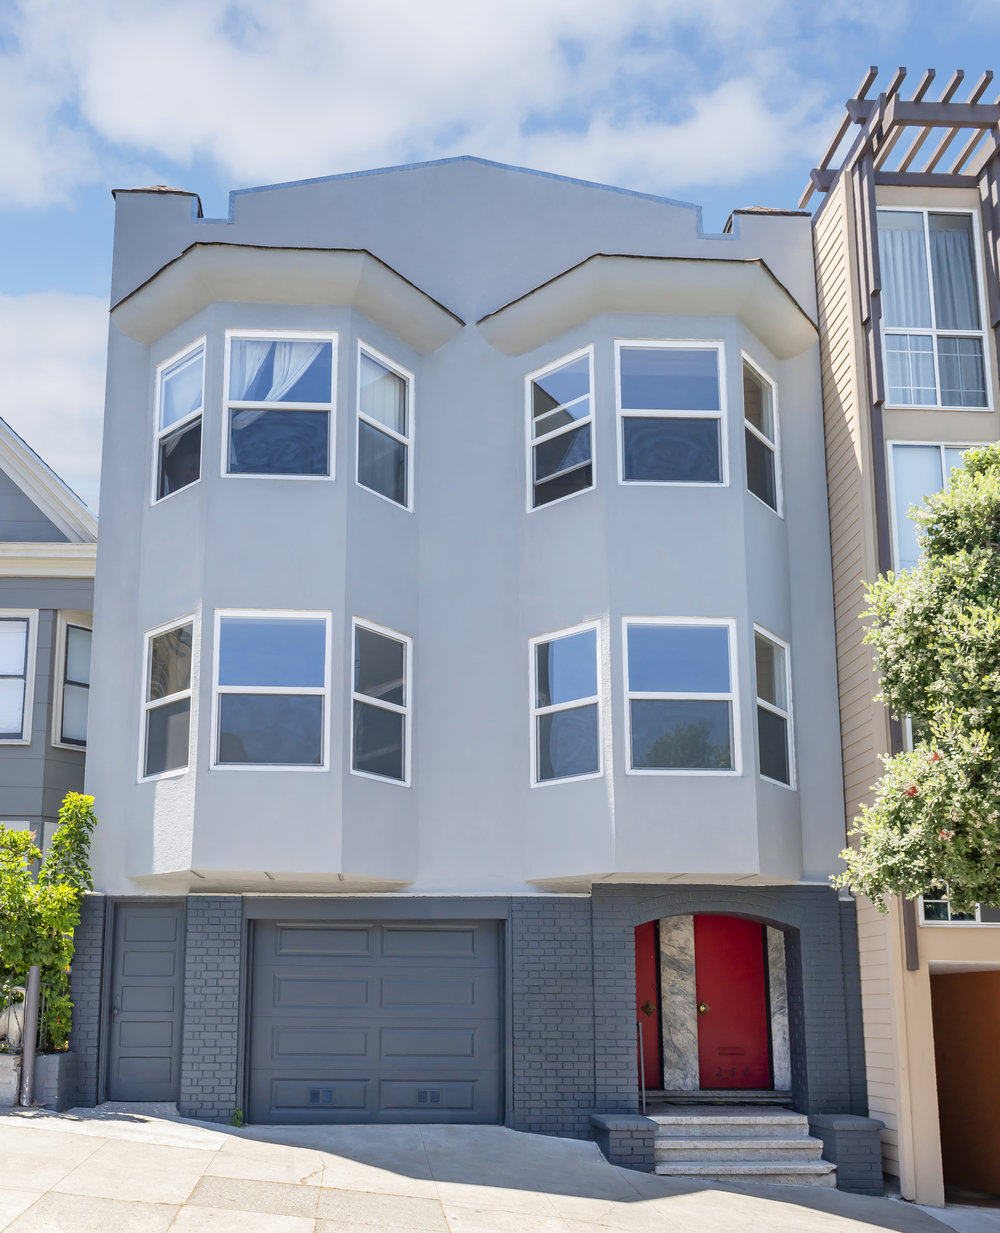 256-258 Connecticut Street Sold by Alek Keytiyev San Francisco Real Estate Realtor